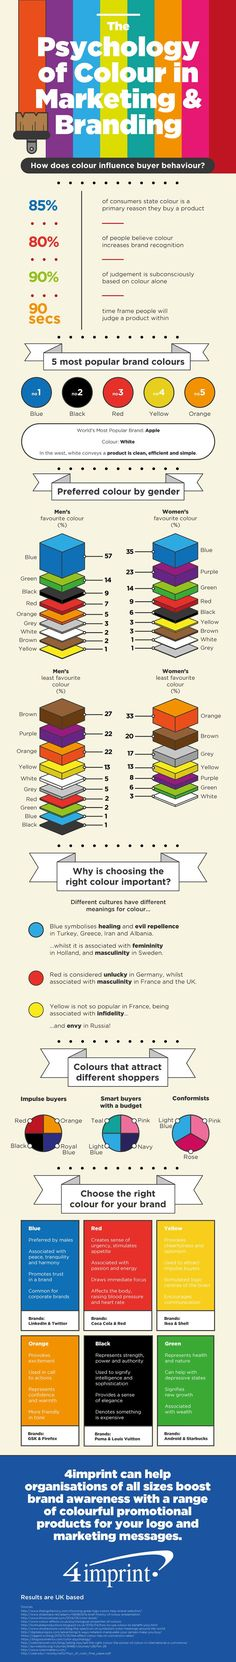 Colour Psychology How Colour Affects Your Website & Marketing Strategy - @redwebdesign